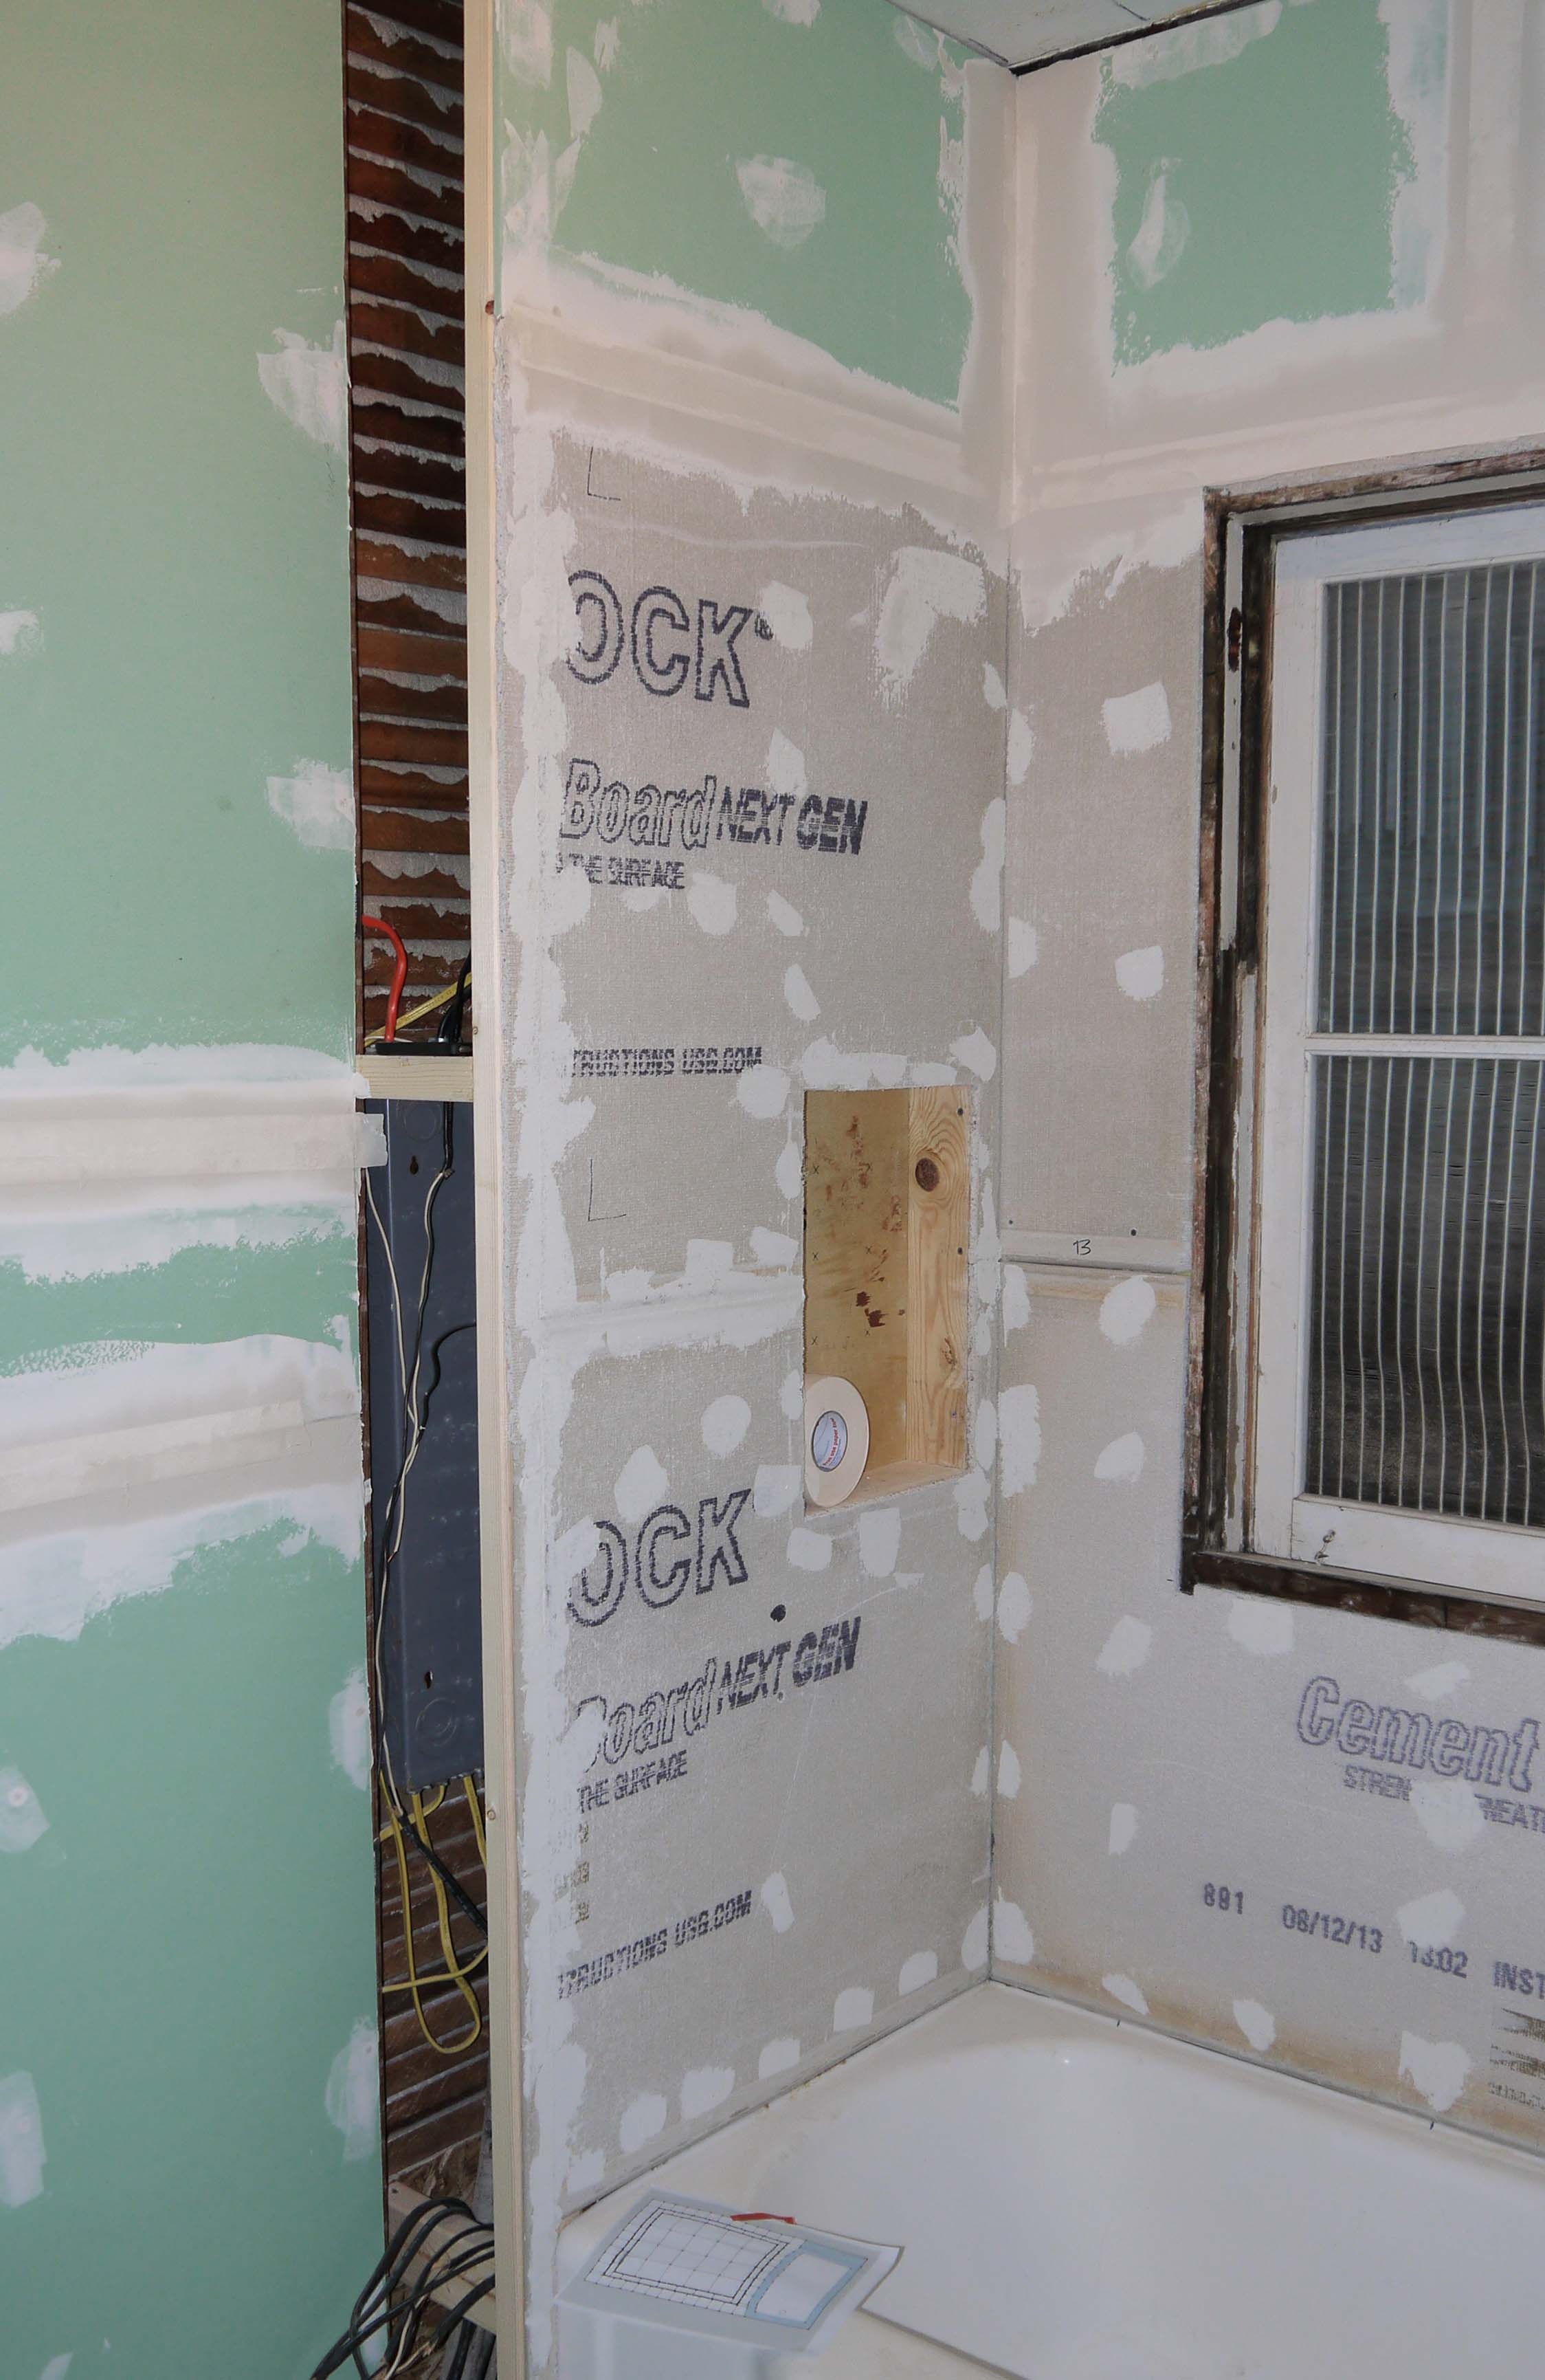 Mud wrestling and how the ceiling turned yellow up and for Drywall or cement board for shower